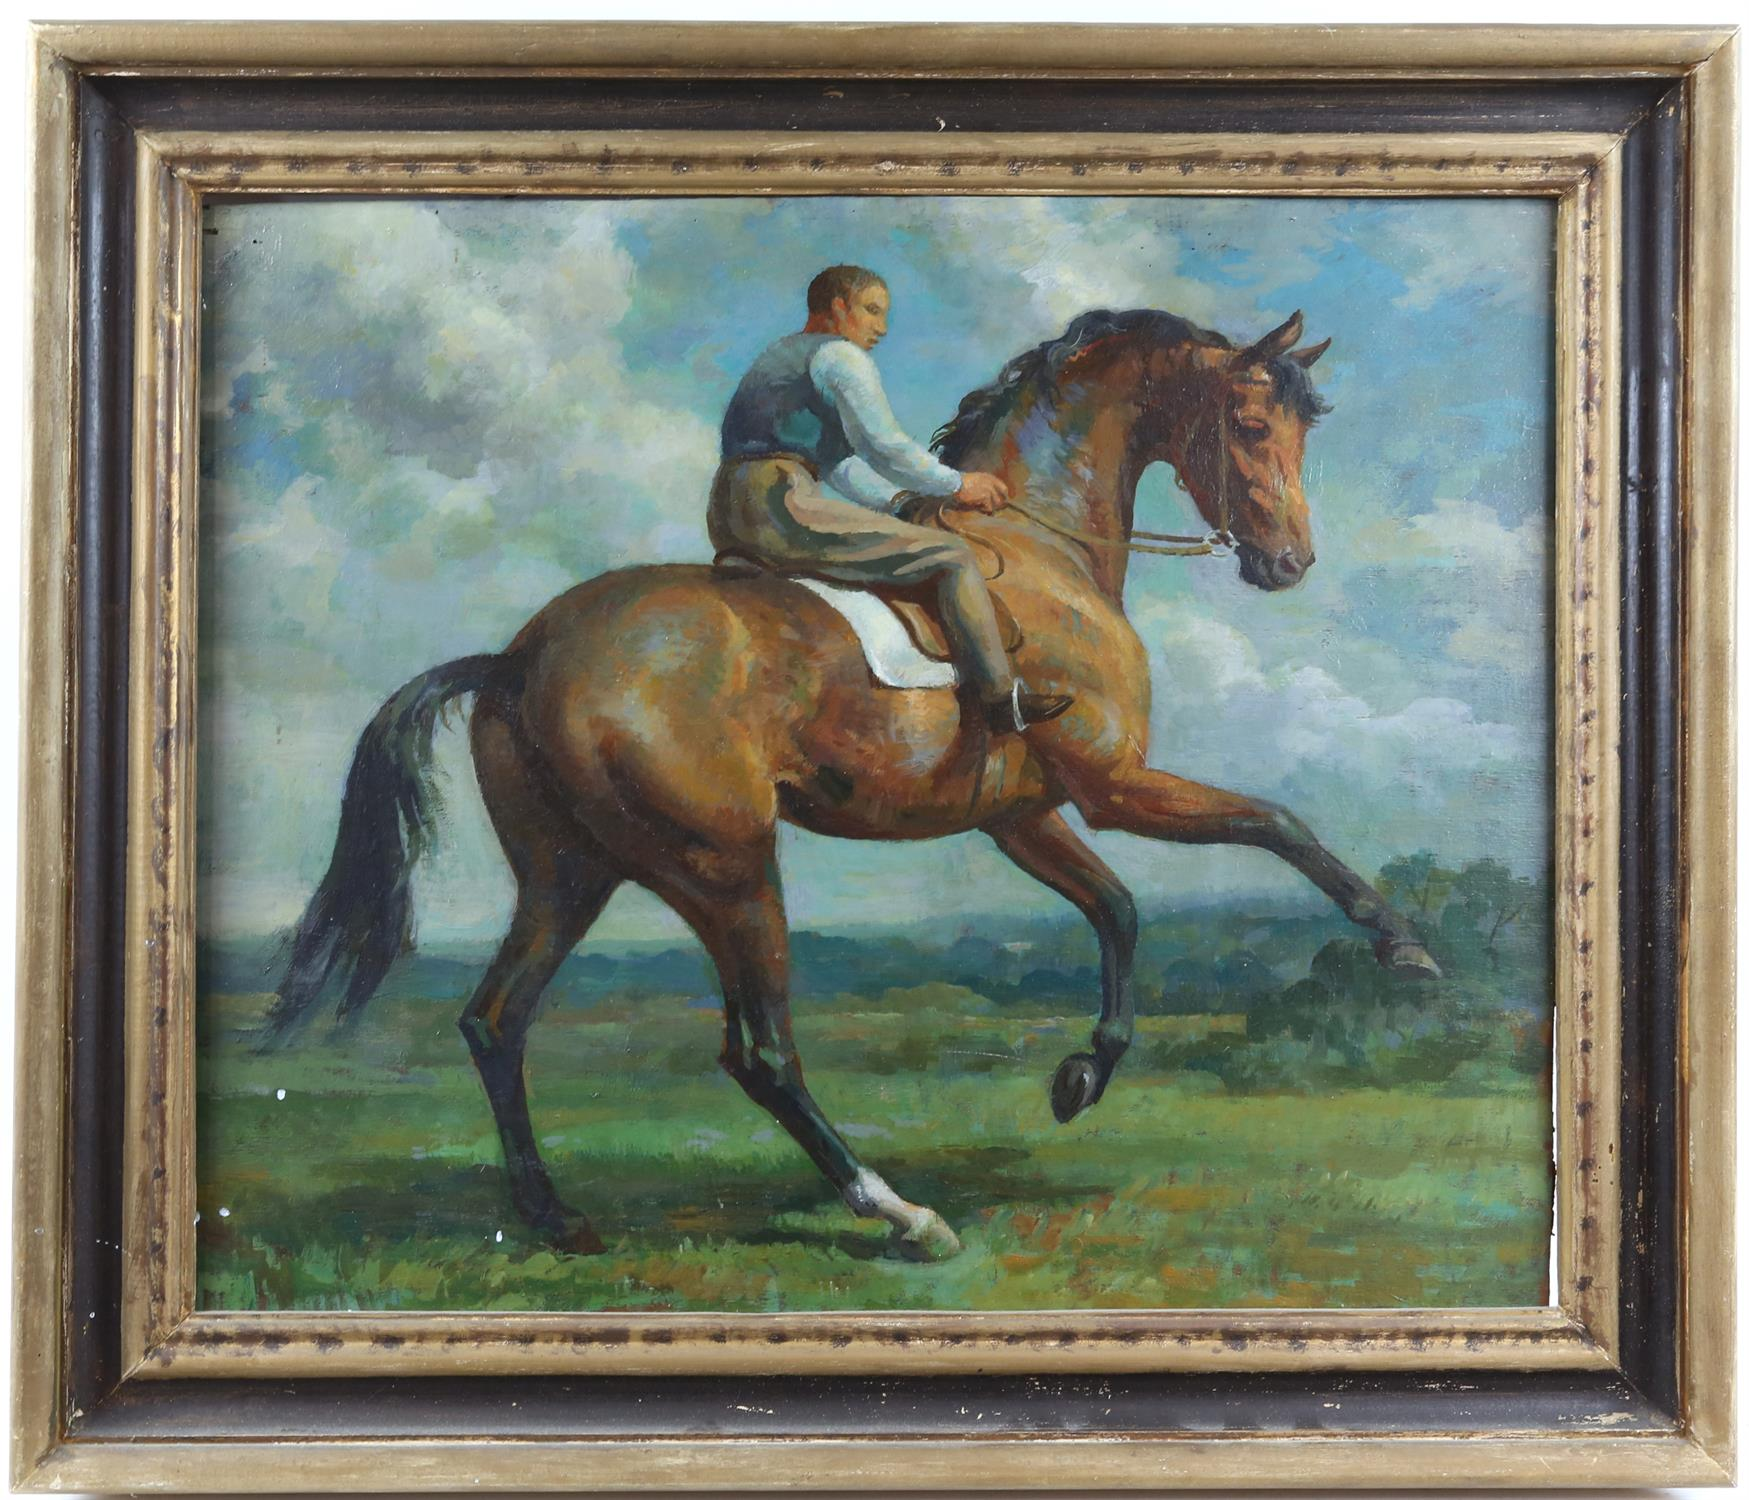 § Lionel Ellis (1903-1988) Rider on a Spirited Horse. Oil on board, indistinctly signed lower right - Image 2 of 4